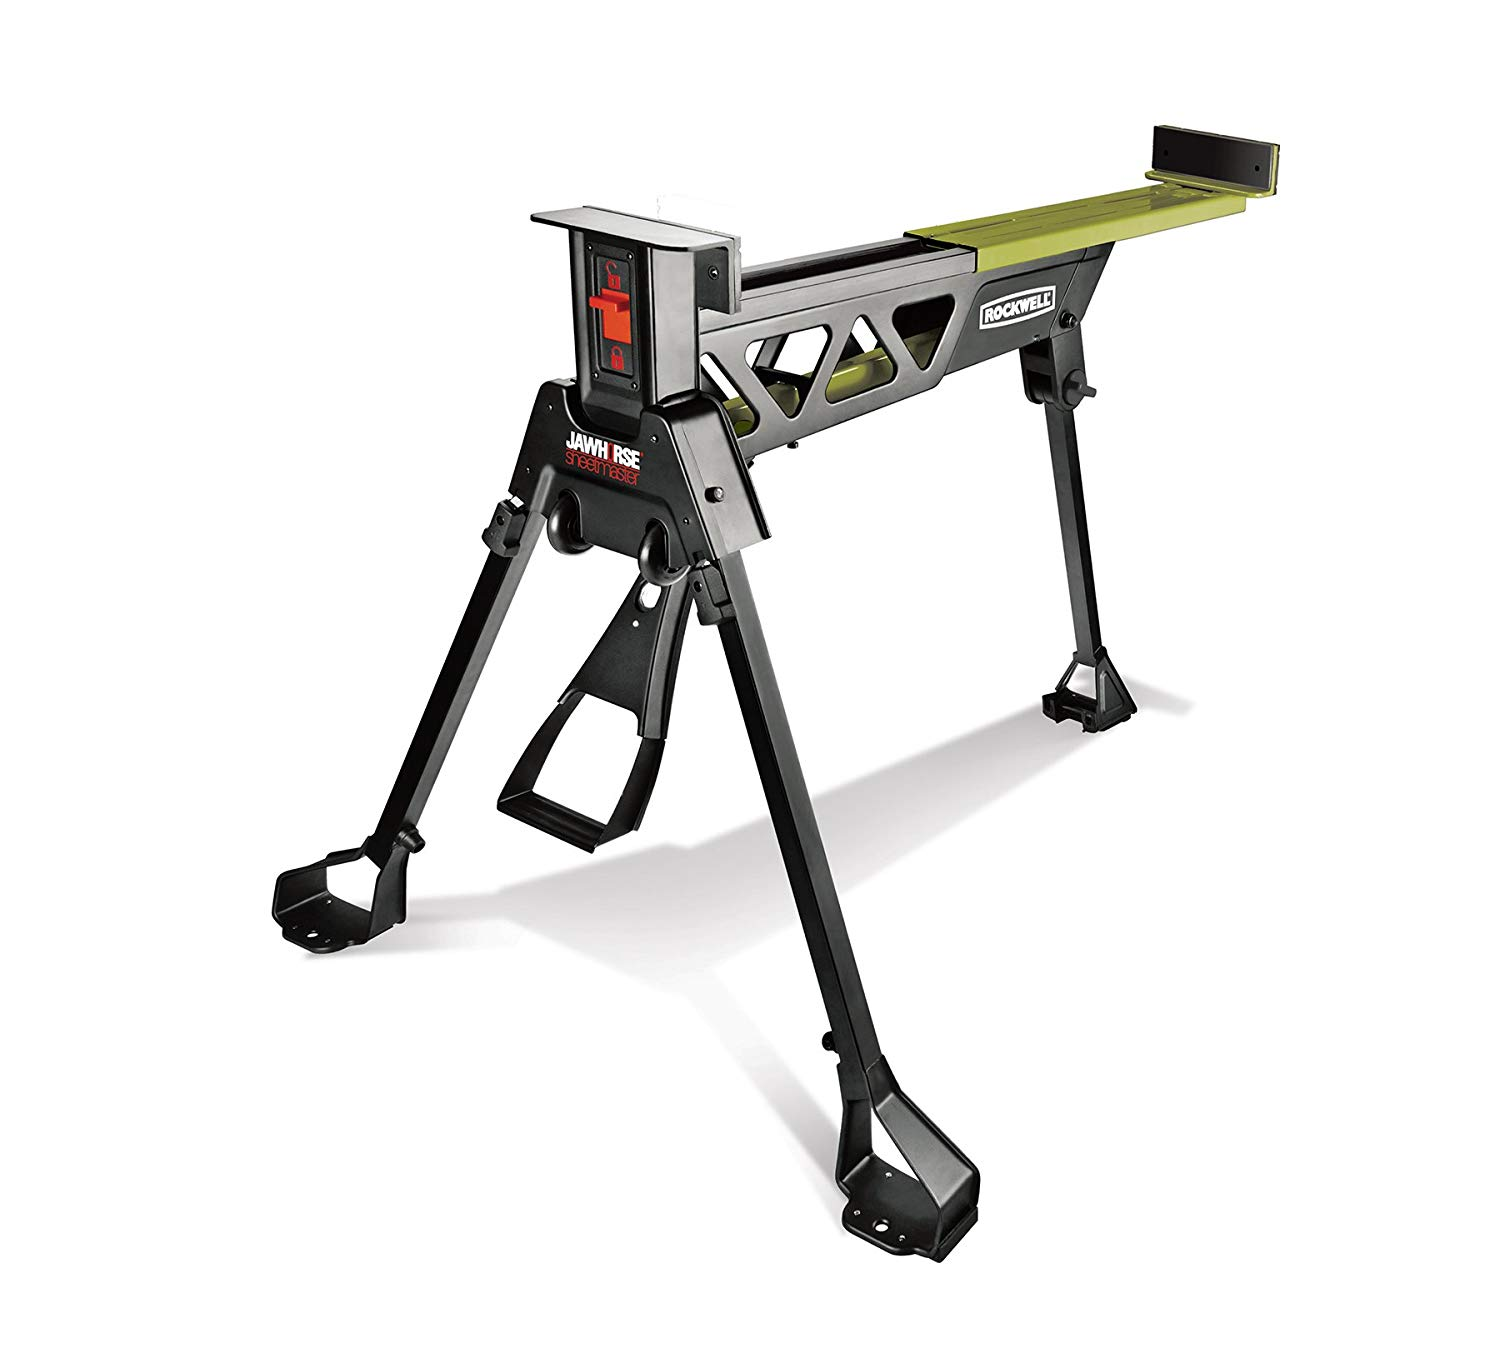 Rockwell RK9002 Rolling Work Bench